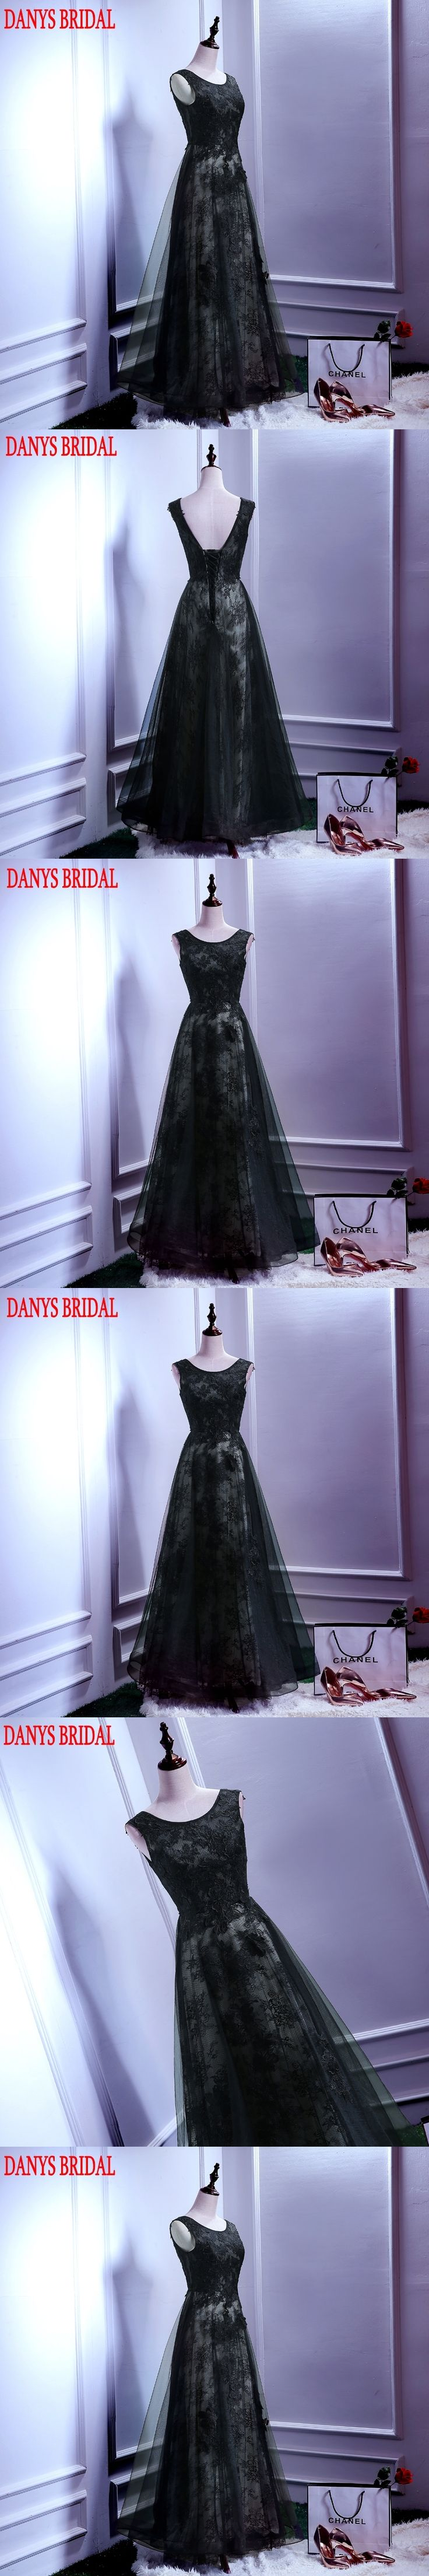 Black Long Lace Evening Dresses Party A Line Beautiful Women Sexy Backless Prom Formal Evening Gowns Dresses On Sale